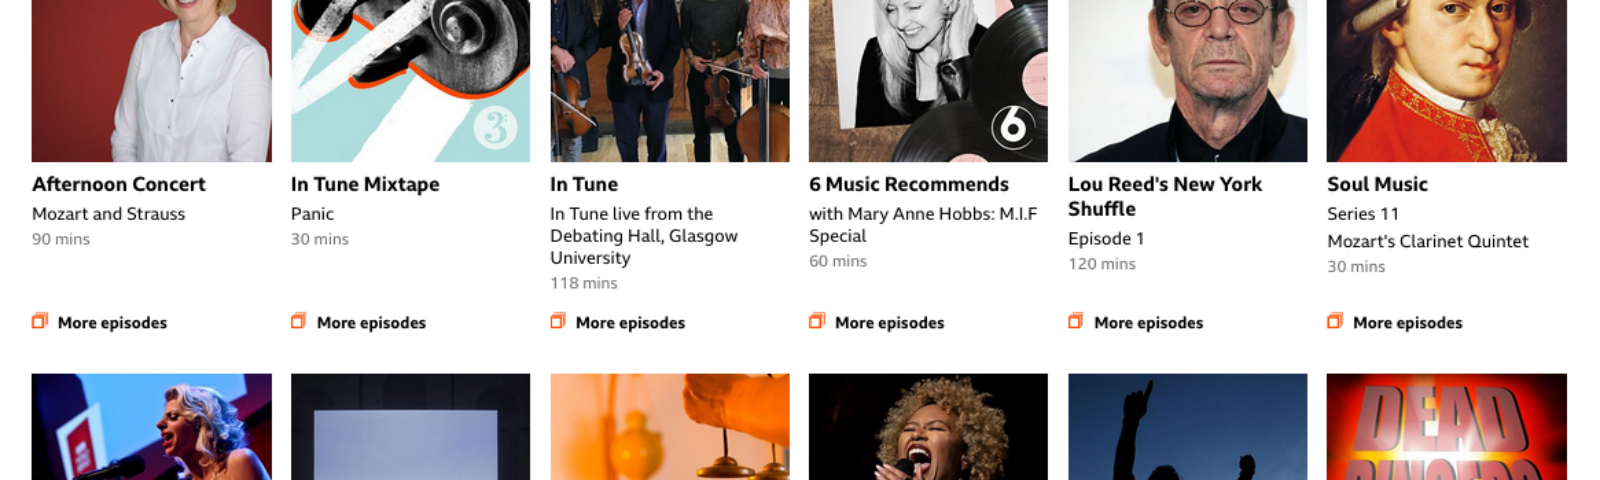 Screenshot of the recommendations on the Sounds website